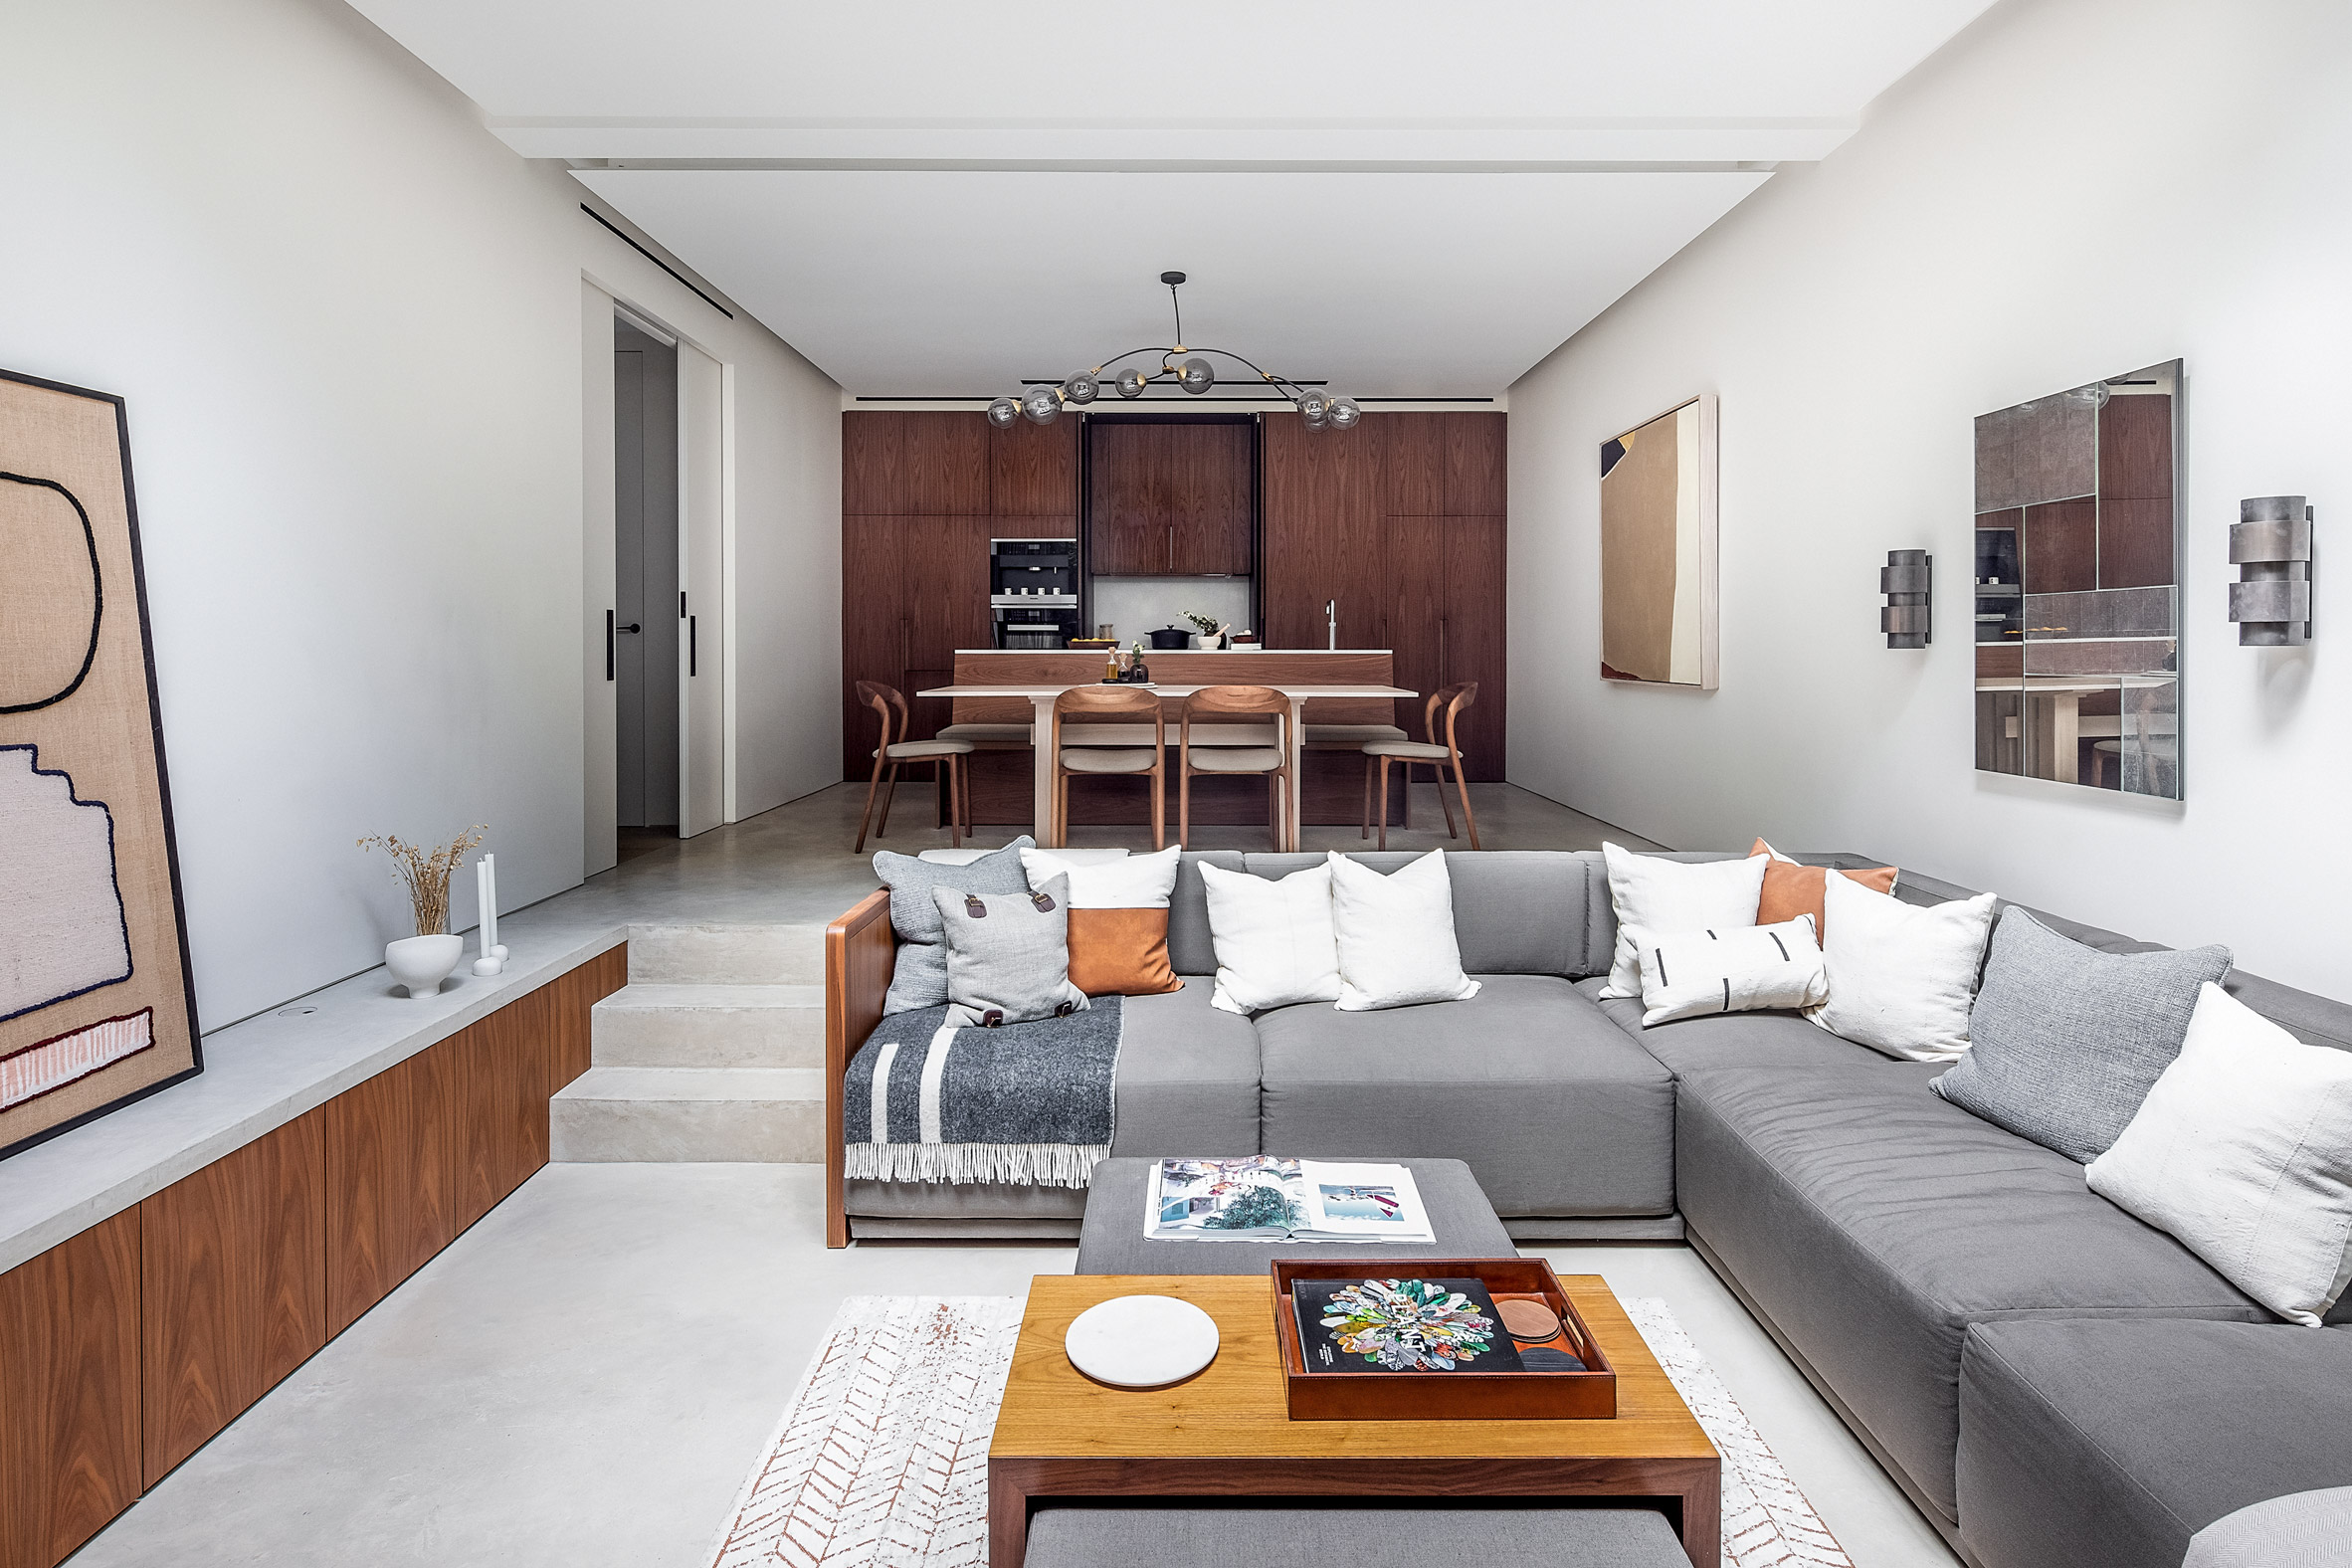 Sunken living room and kitchen of the Knightsbridge Mews House